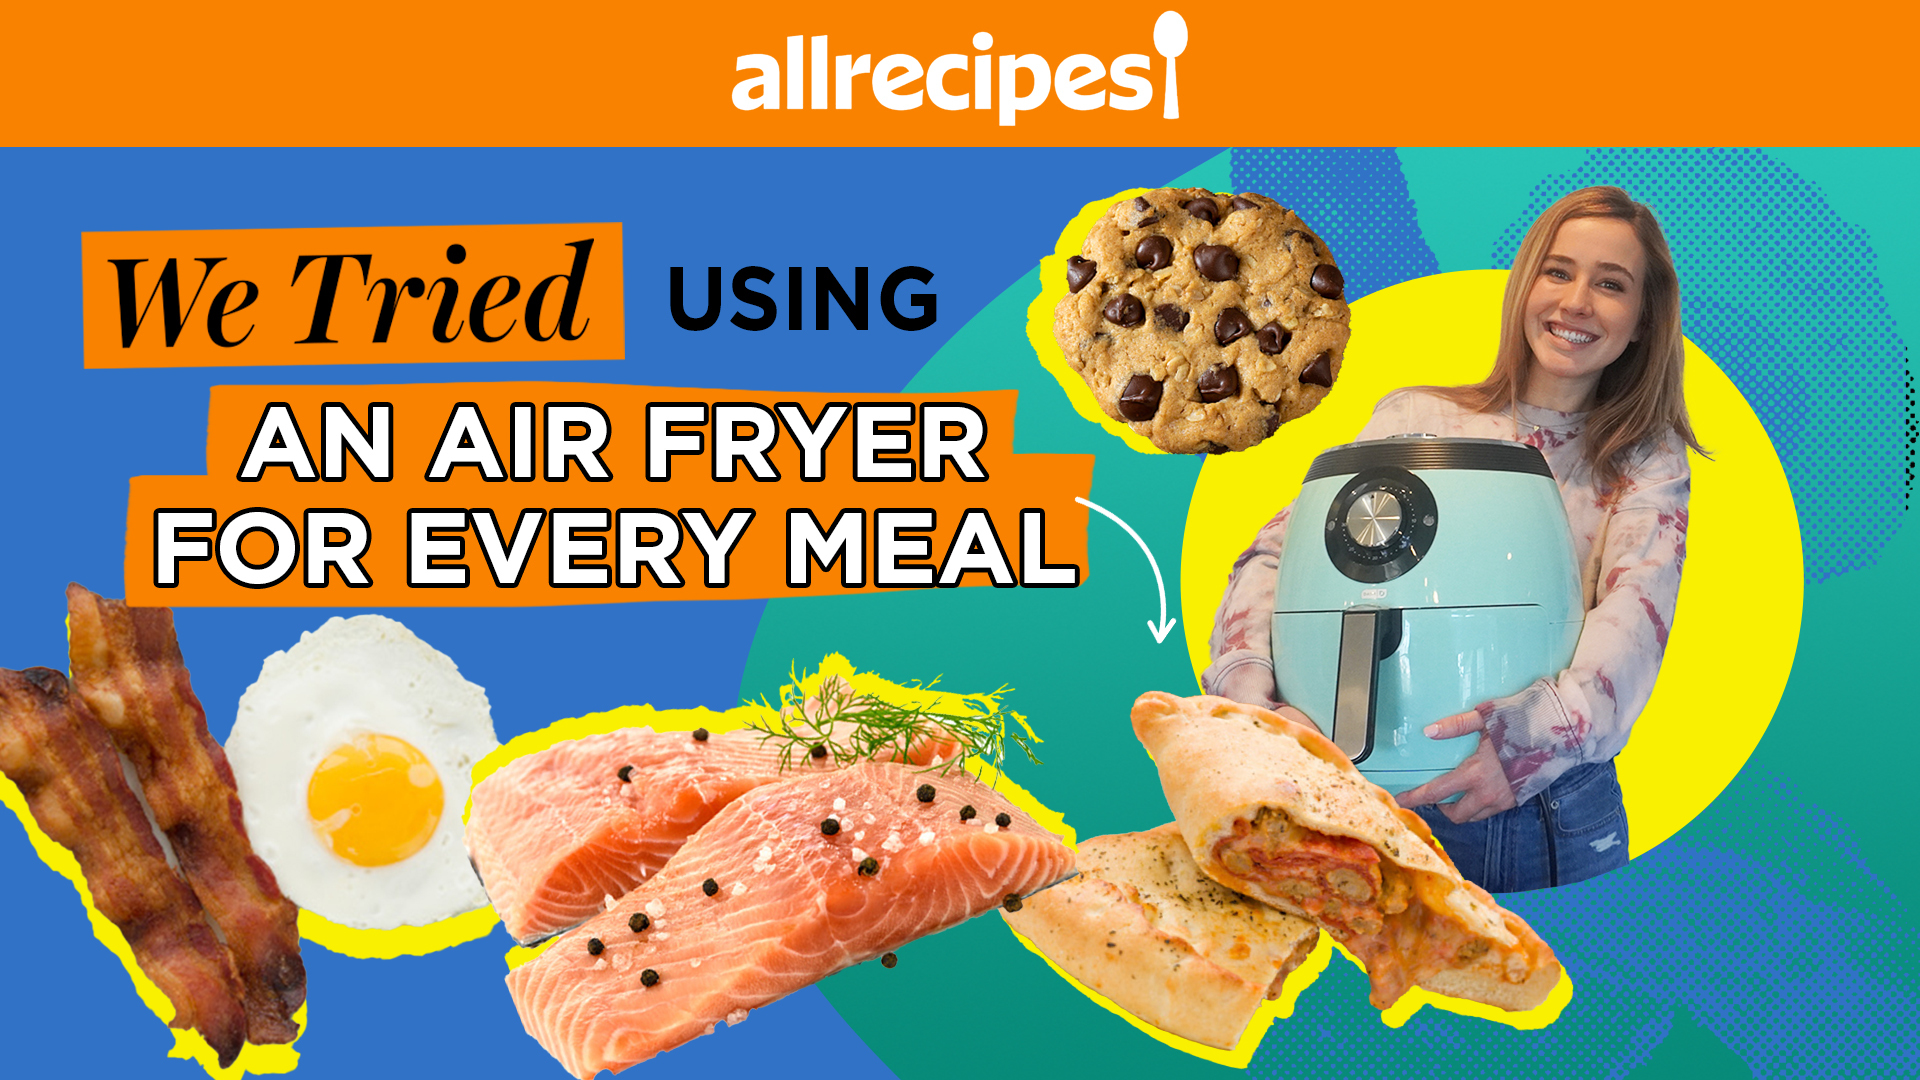 We Tried Using an Air Fryer for Every Meal